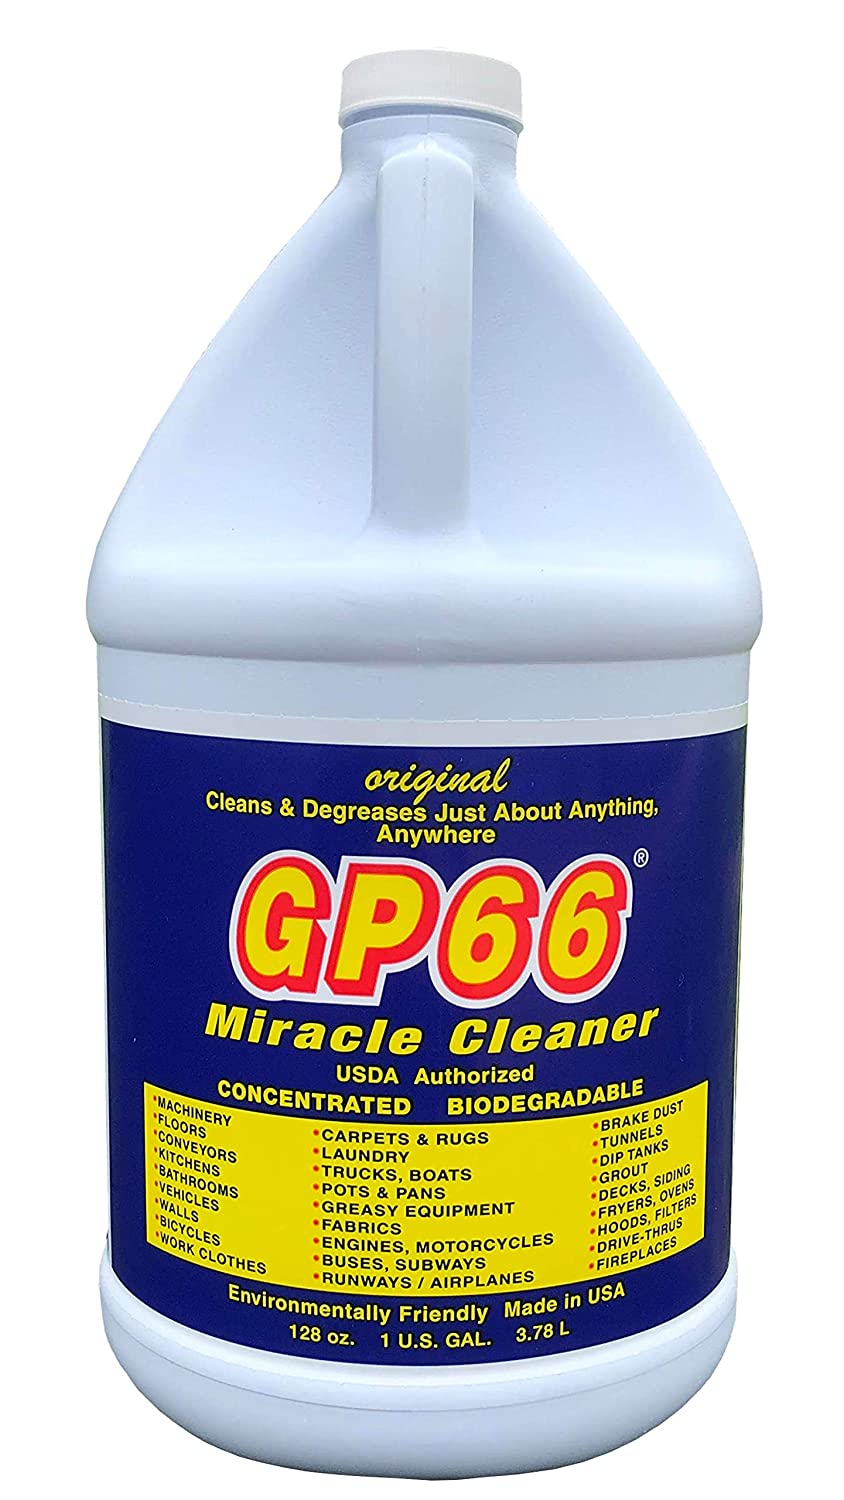 GP66 miracle cleaner gallon from GP66 (1, gal.) cleans and degreases just about anything anywhere! concentrated oven cleaner concrete cleaner laundry detergent grout pots carpets and more!